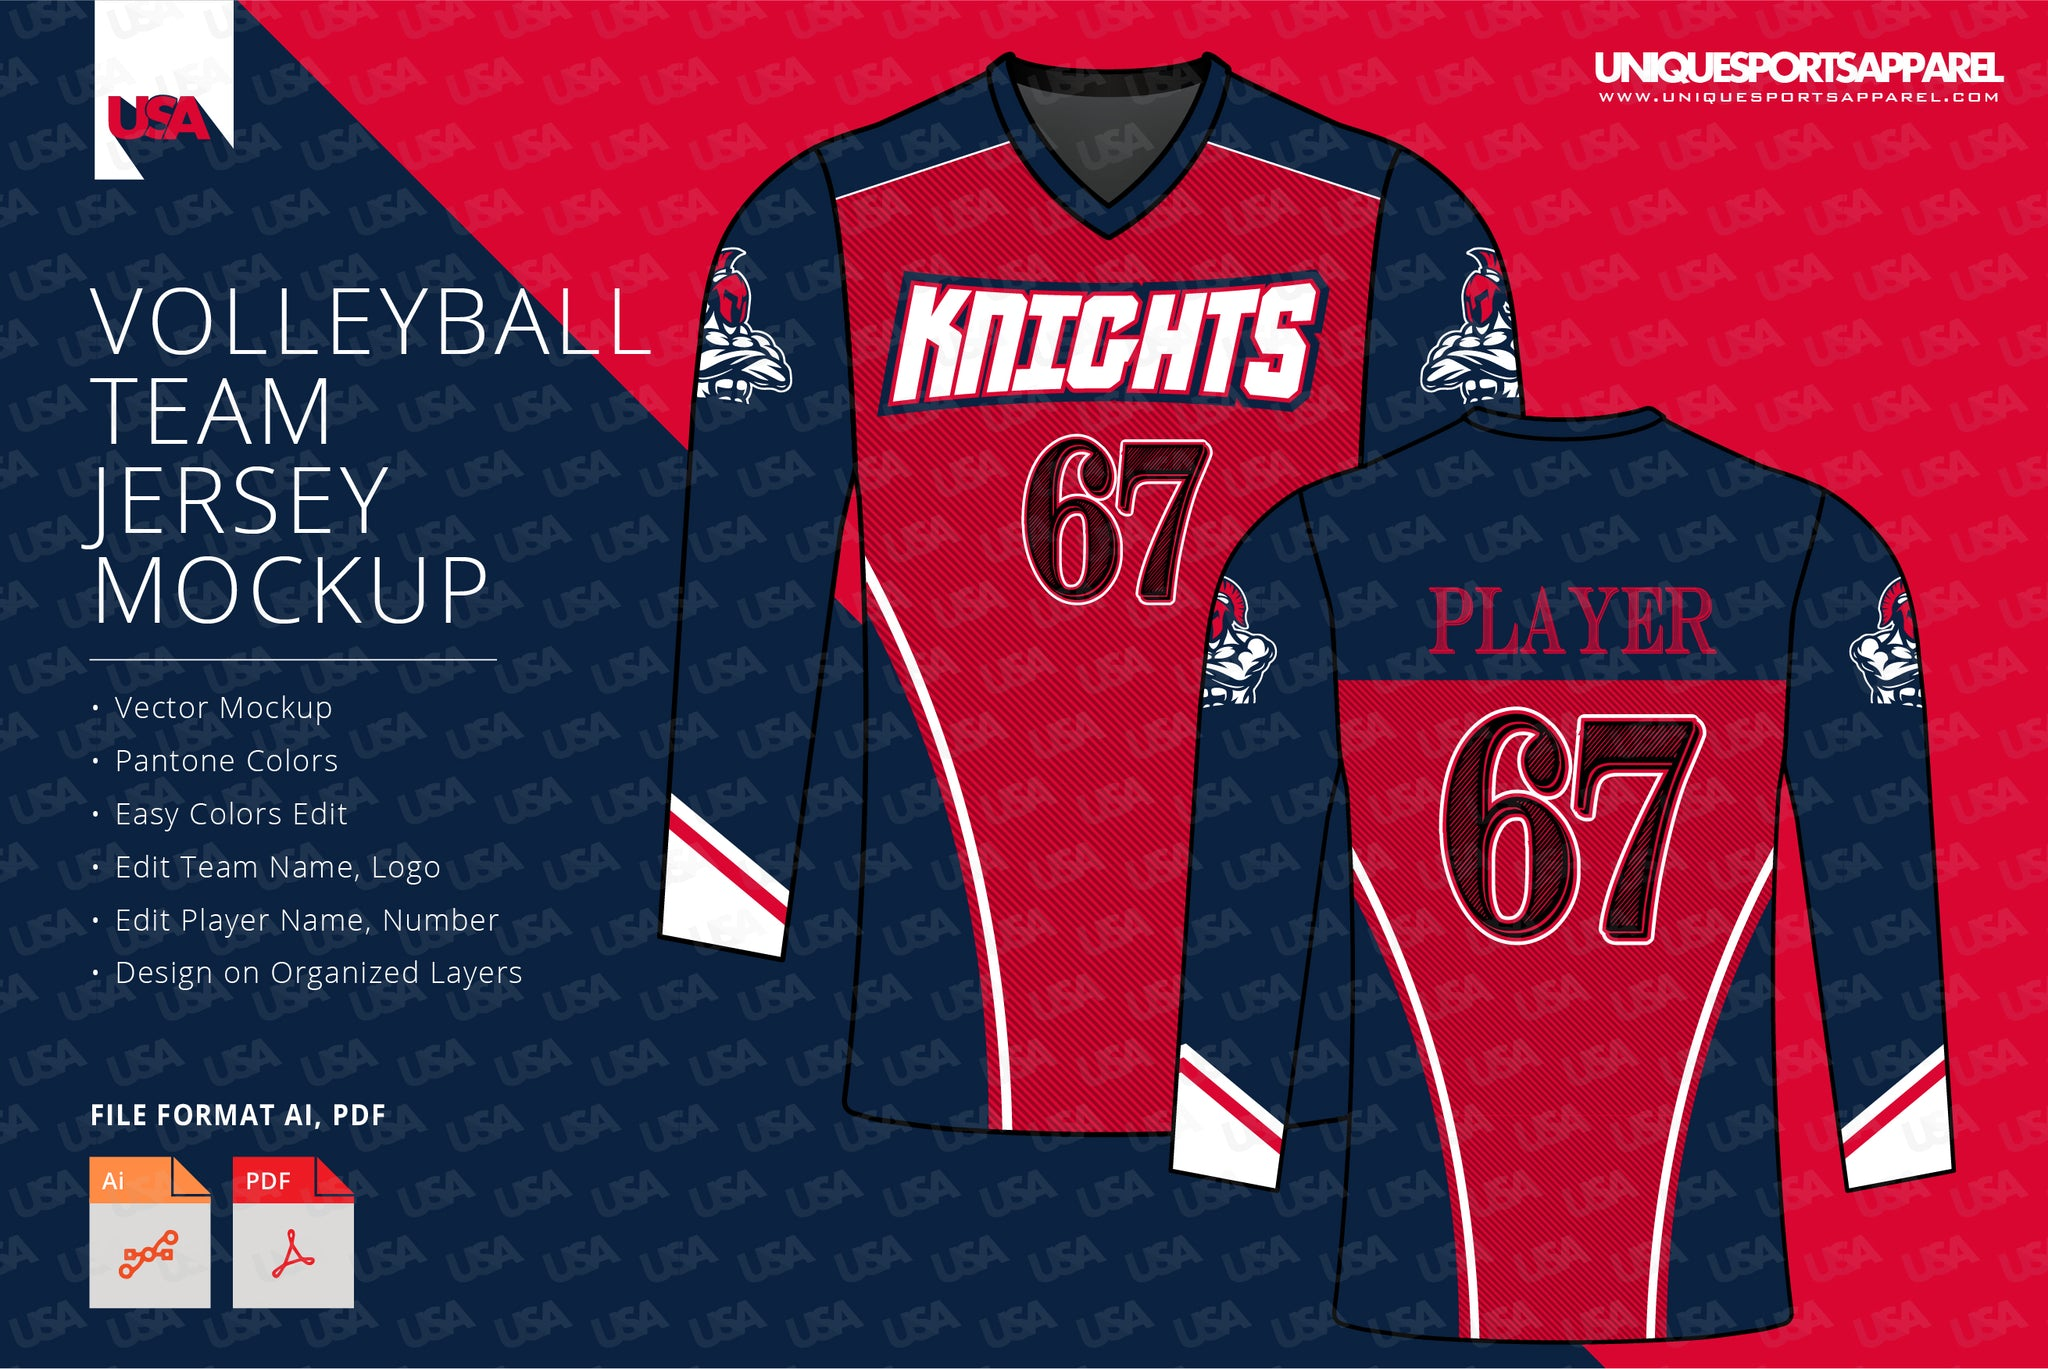 KNIGHTS VOLLEYBALL FULL SLEEVES JERSEY